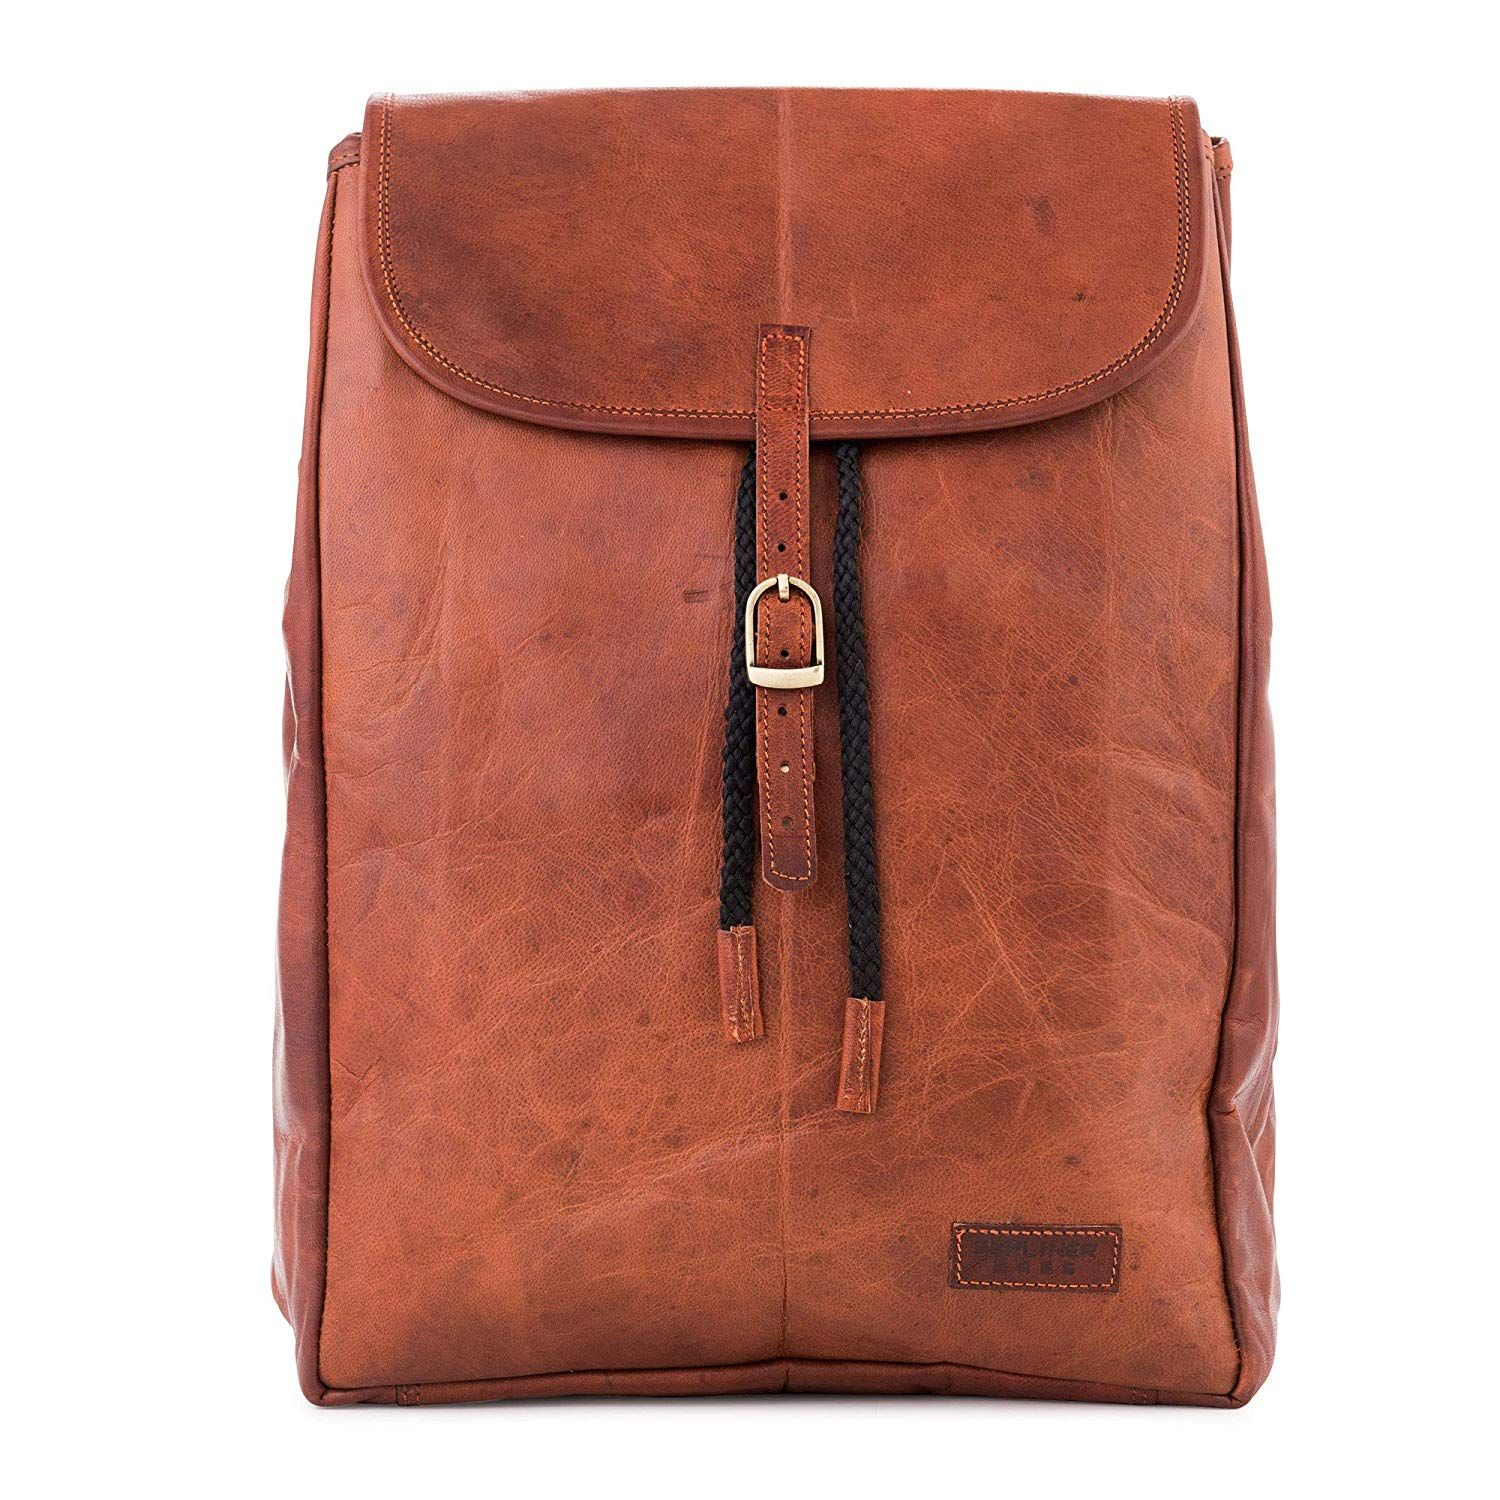 All Our Bags Are Designed Locally In Berlin And Are Inspired By